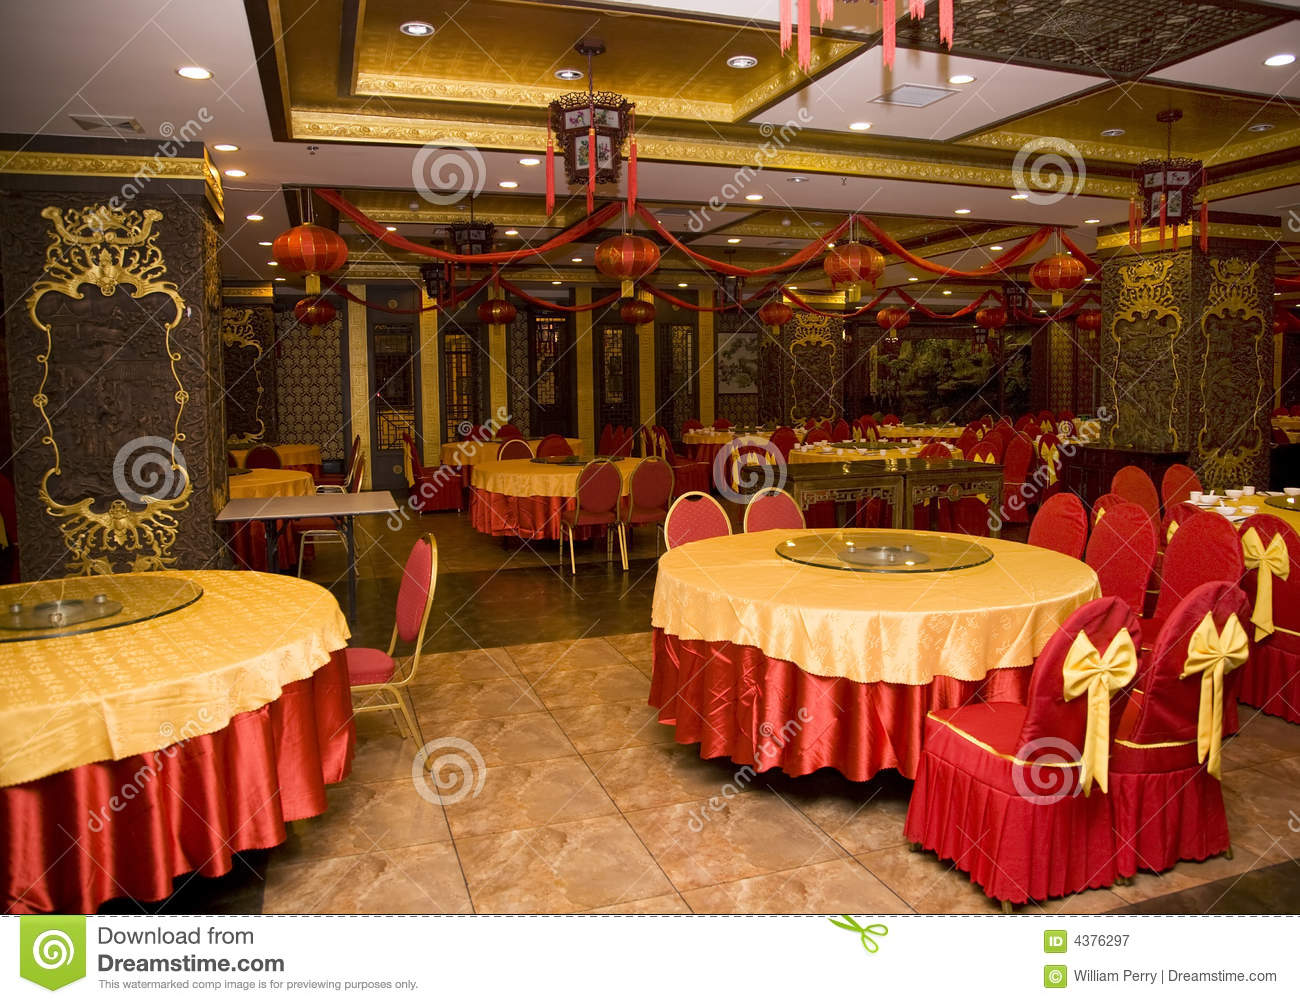 Lunar new year decorations chinese restaurant stock image image of winter holiday 4376297 - Restaurant decor supplies ...